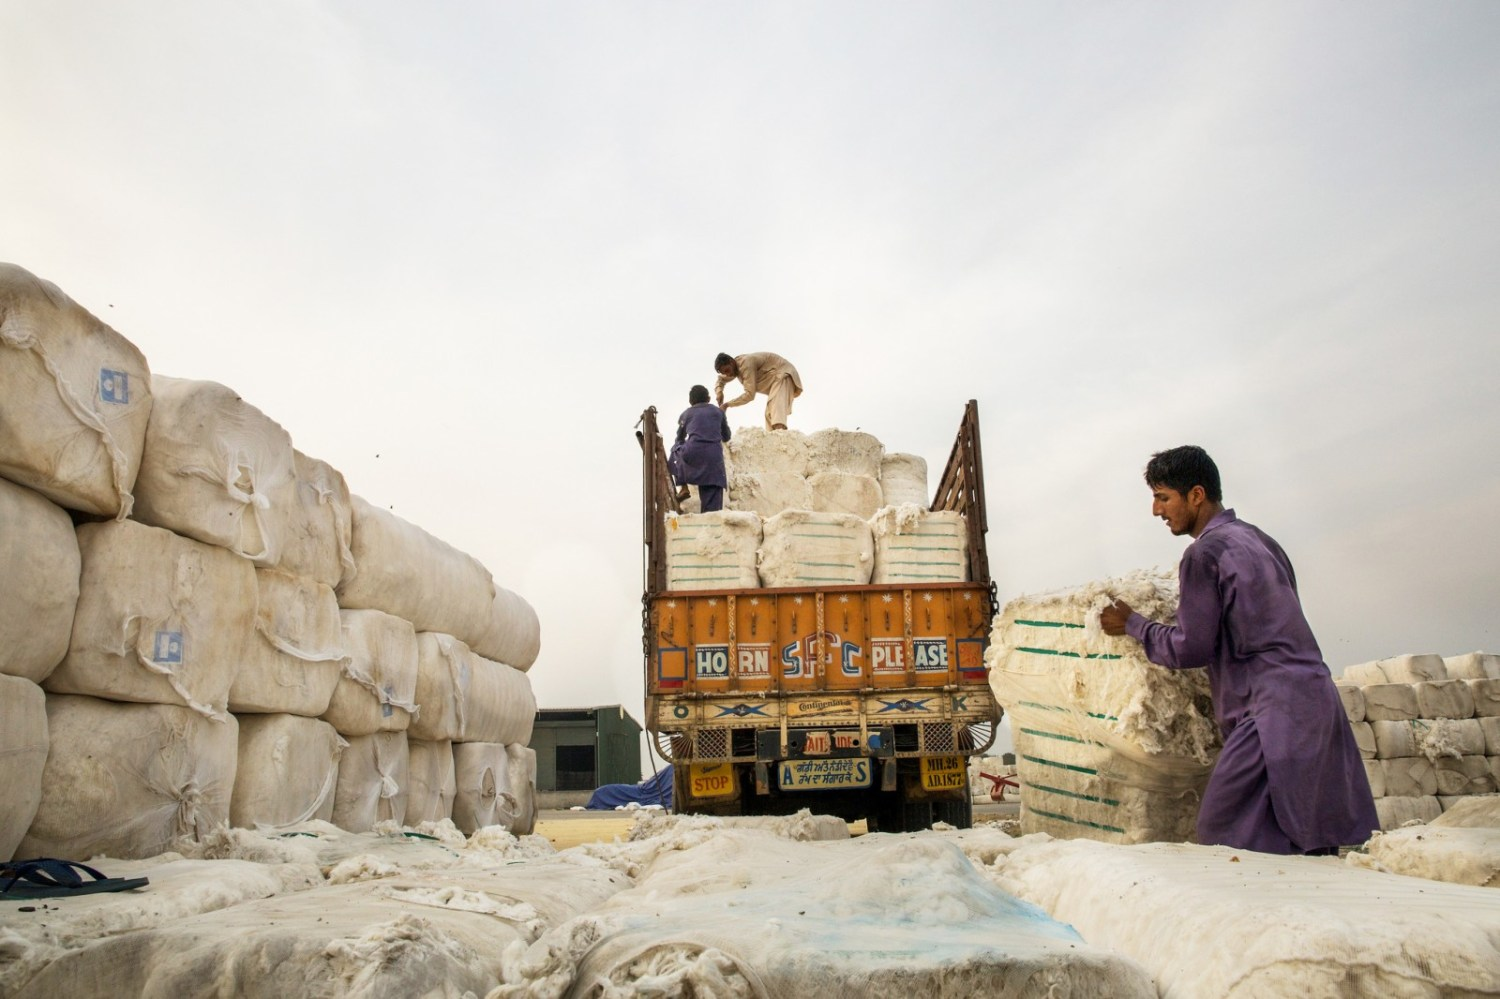 Workers unload cotton bales at the Wagah-Attari Cargo Terminal on the border of India and Pakistan. Dry conditions in Pakistan during the past year wilted crops and forced the textile industry to import $US 4 billion of cotton. Photo courtesy Asian Development Bank via Flickr Creative Commons